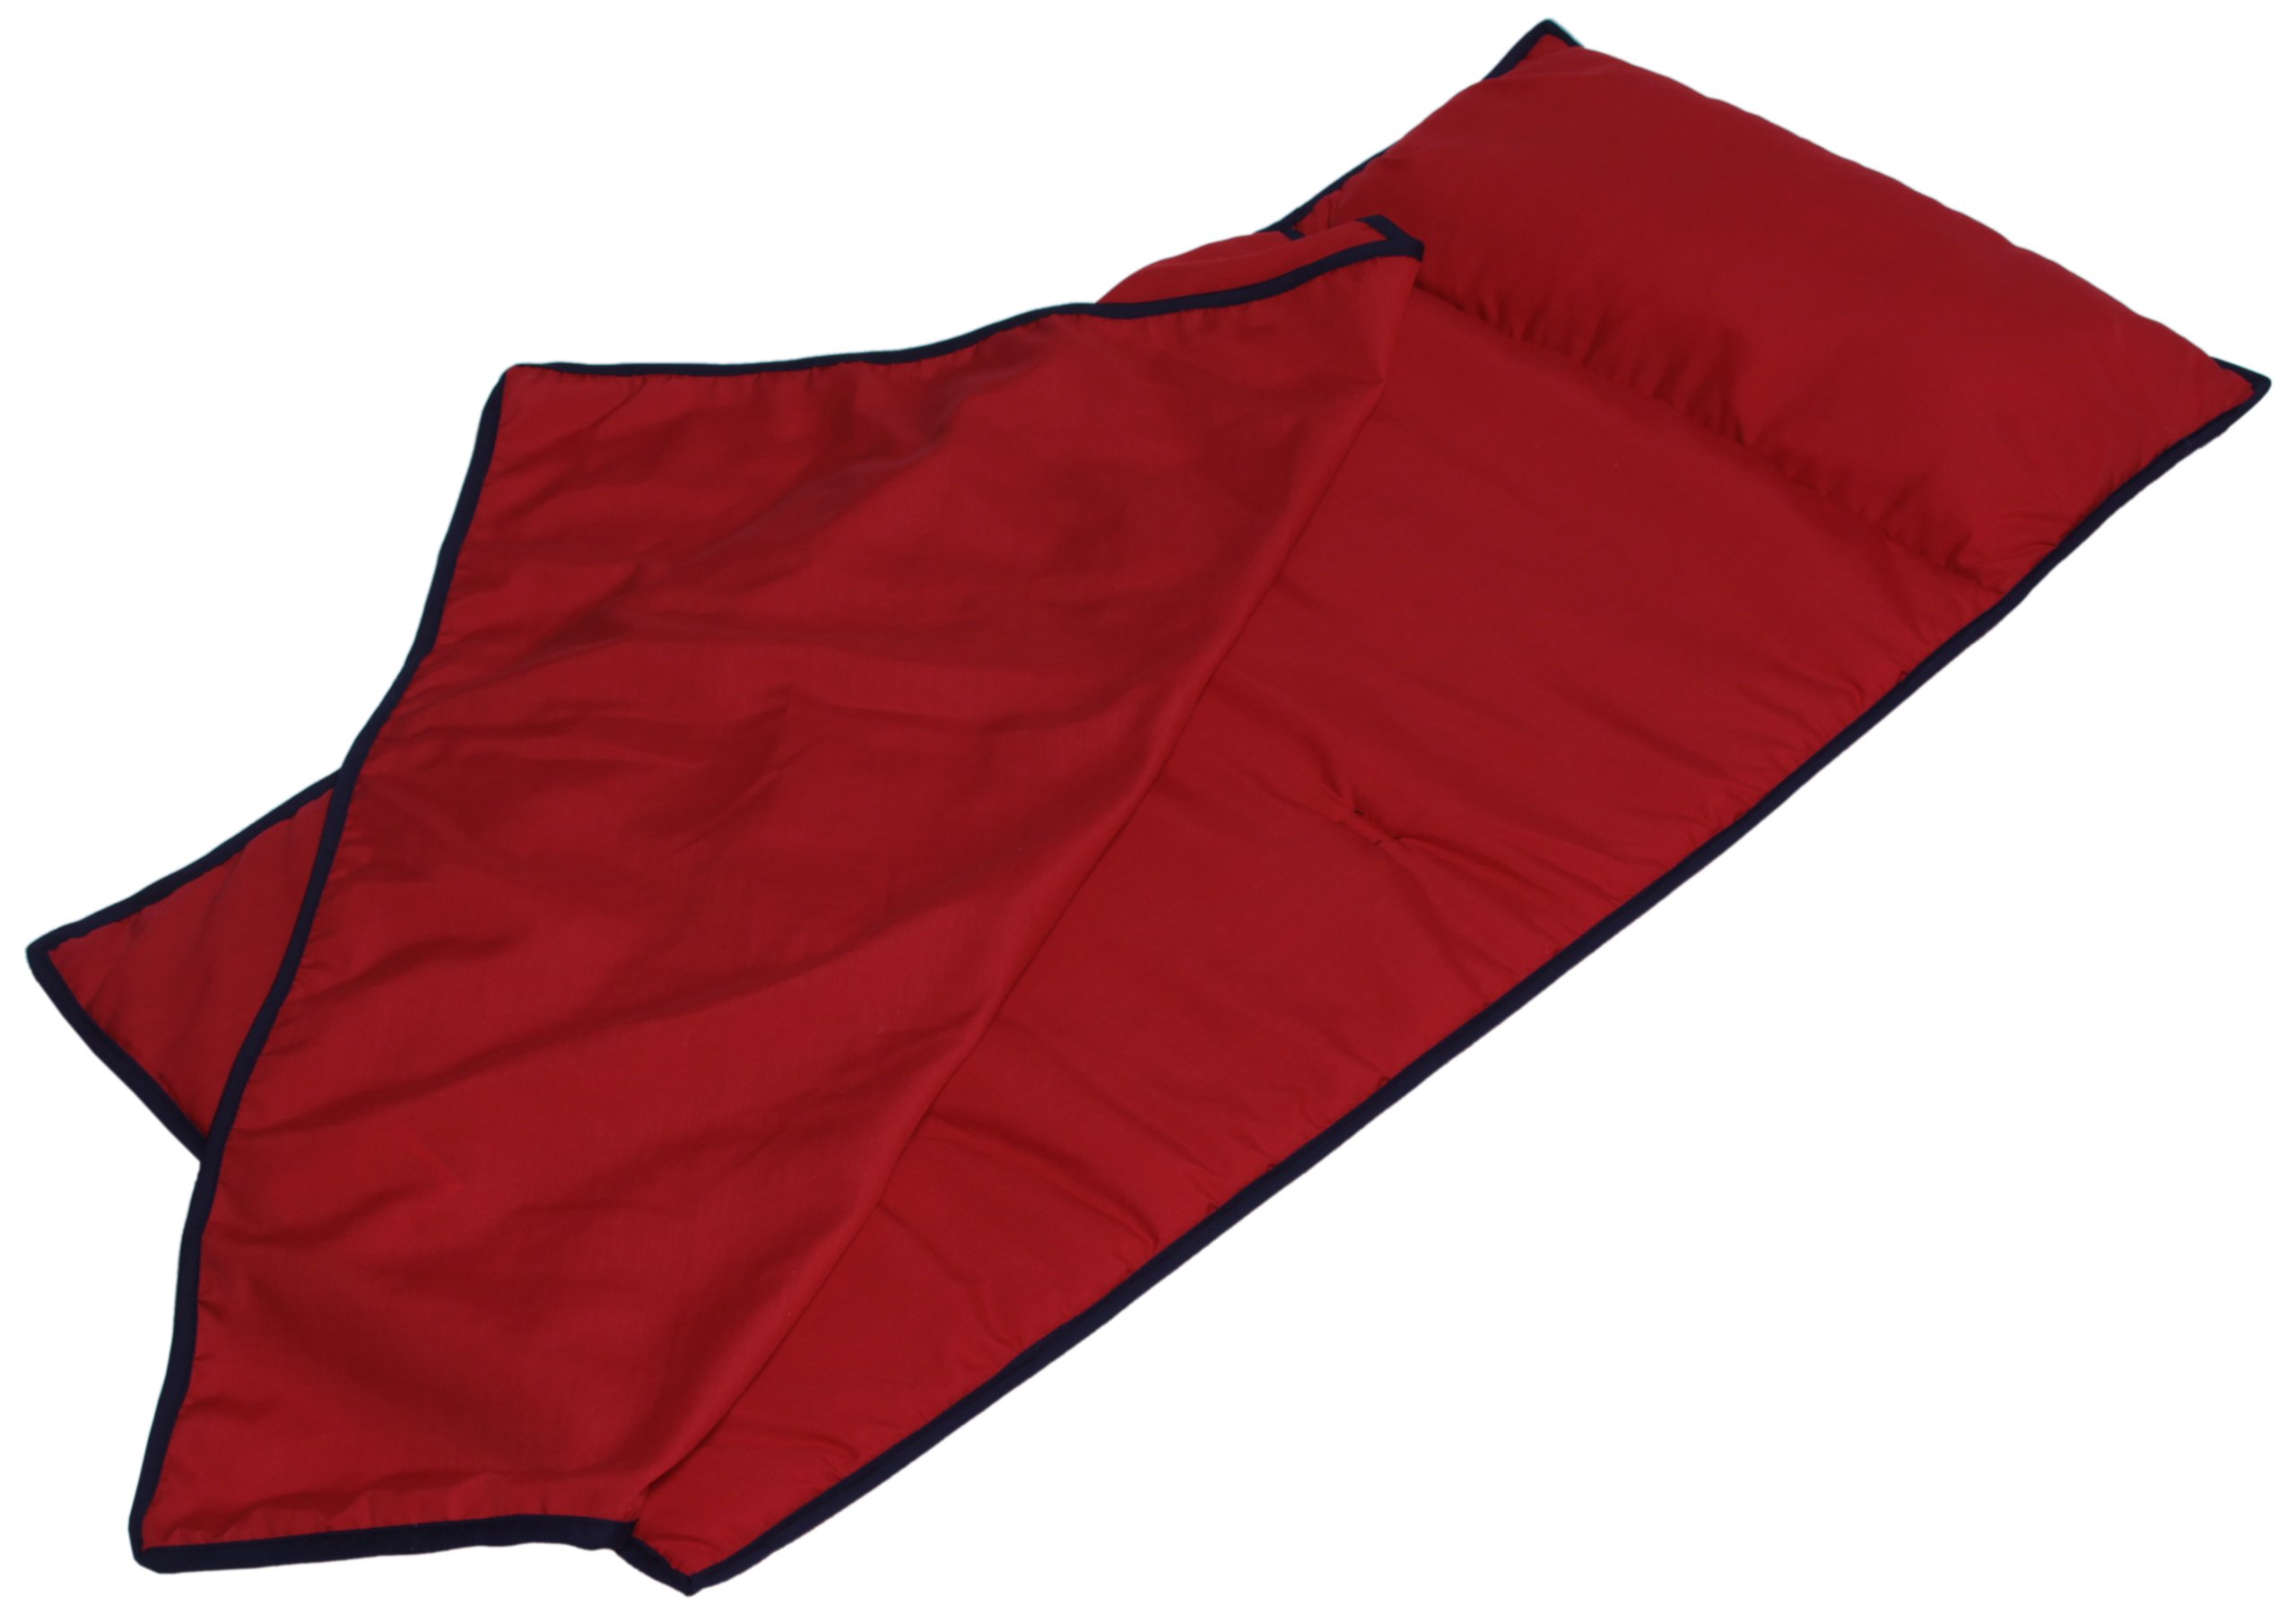 Baby Doll Bedding Nap Pad, Red/Navy